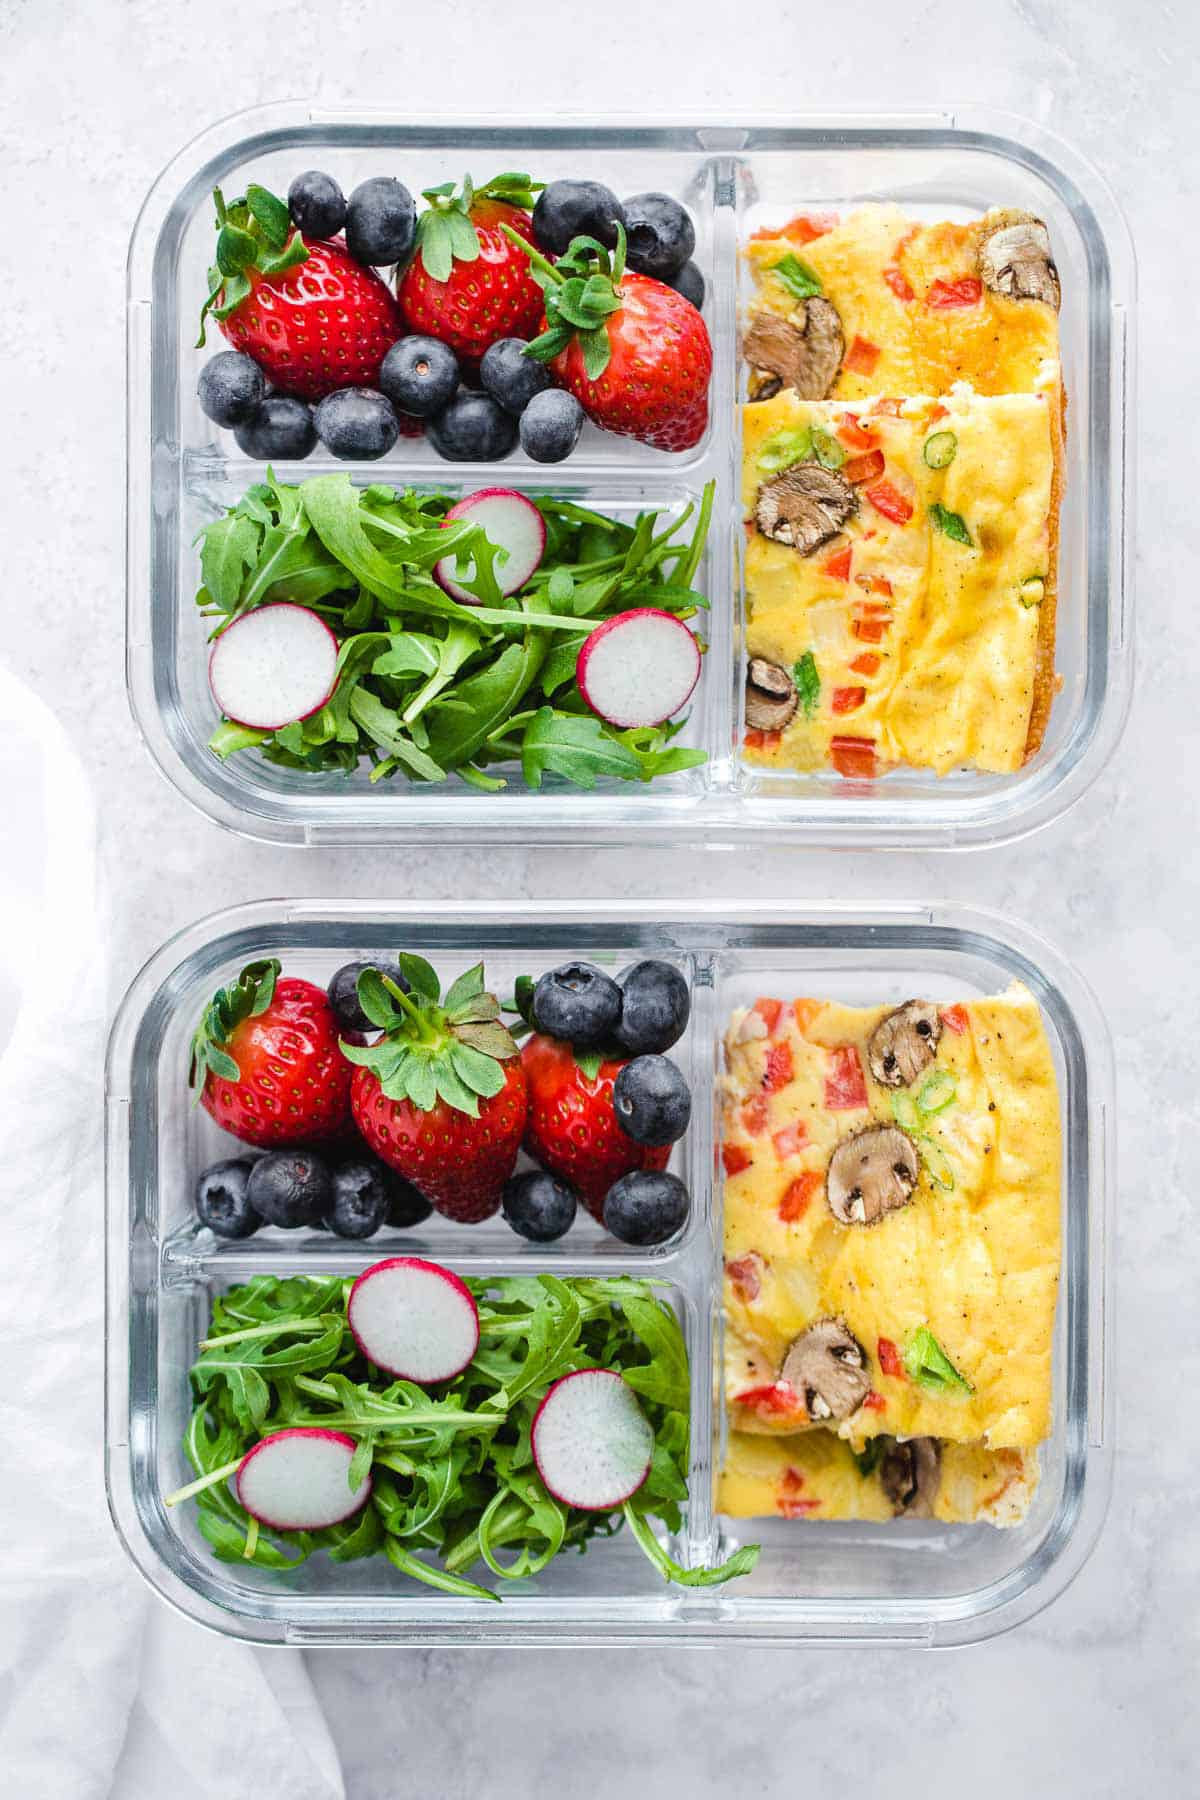 sheet pan eggs for meal prep with a side salad and fresh berries